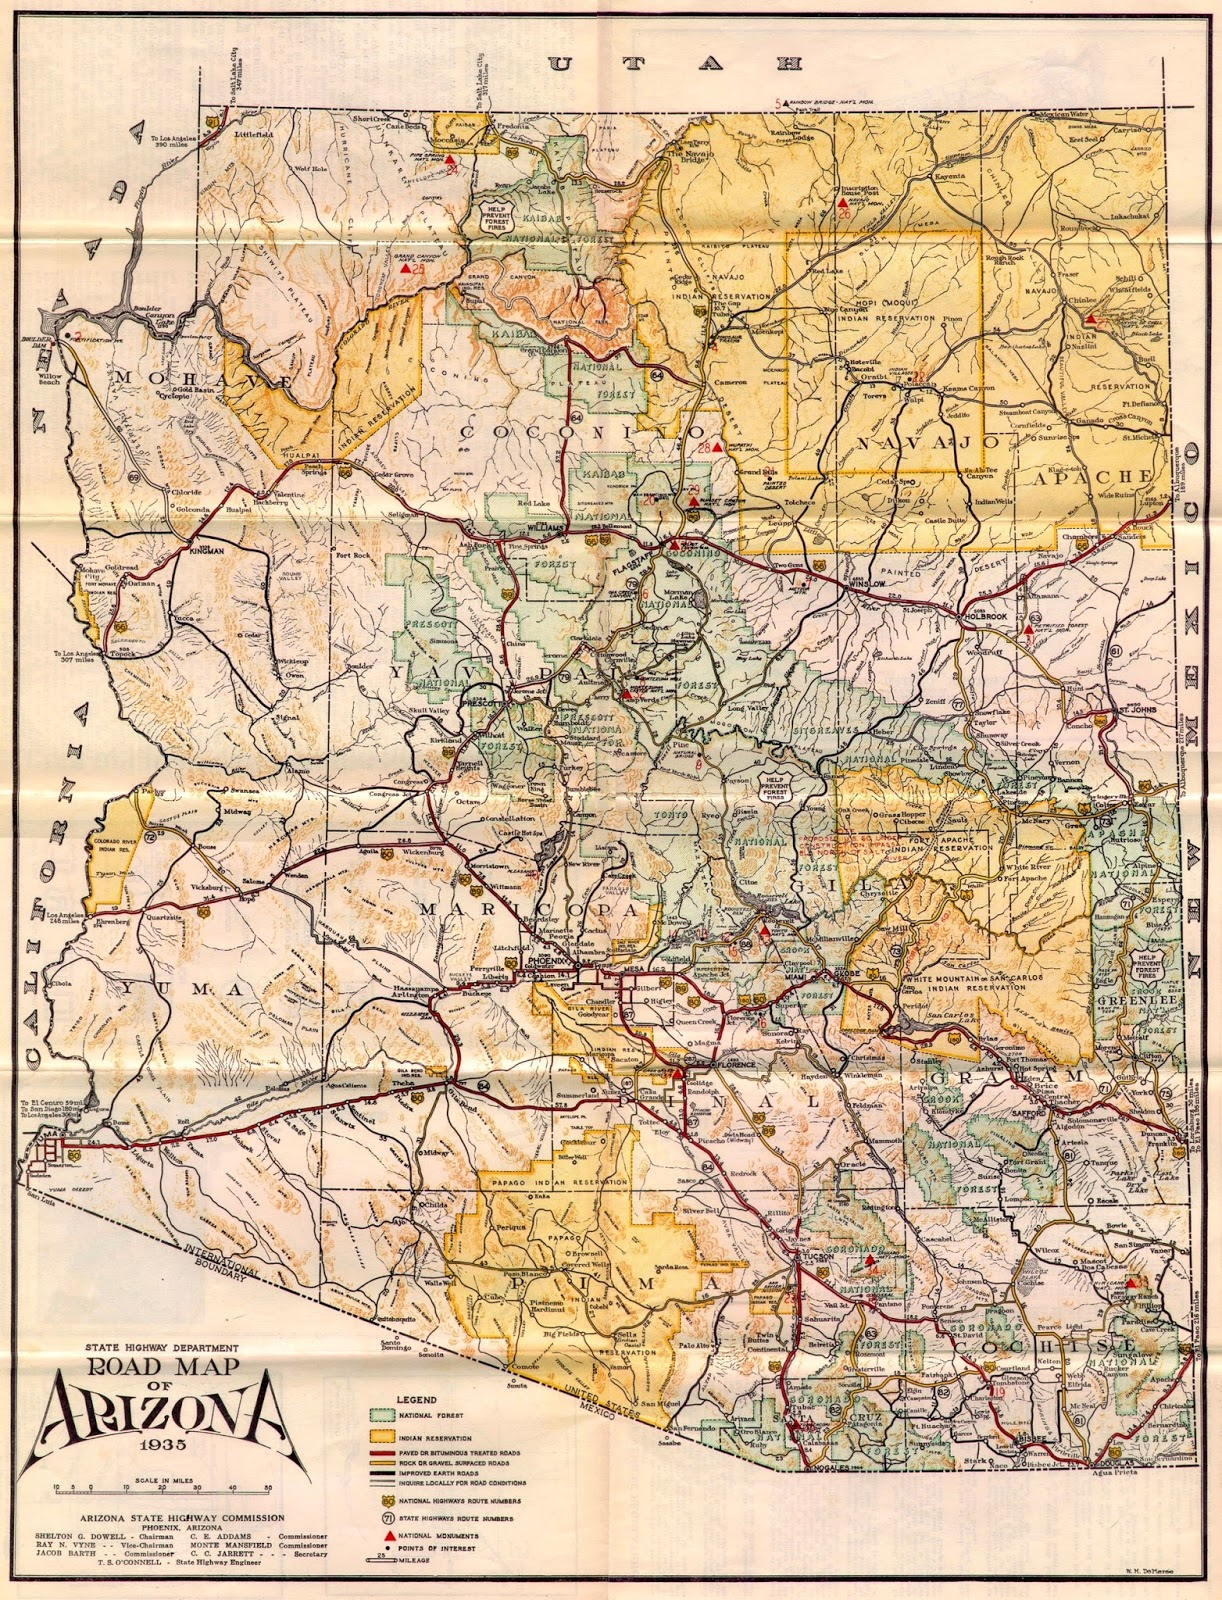 Team US 89 1935 Arizona Highway Map